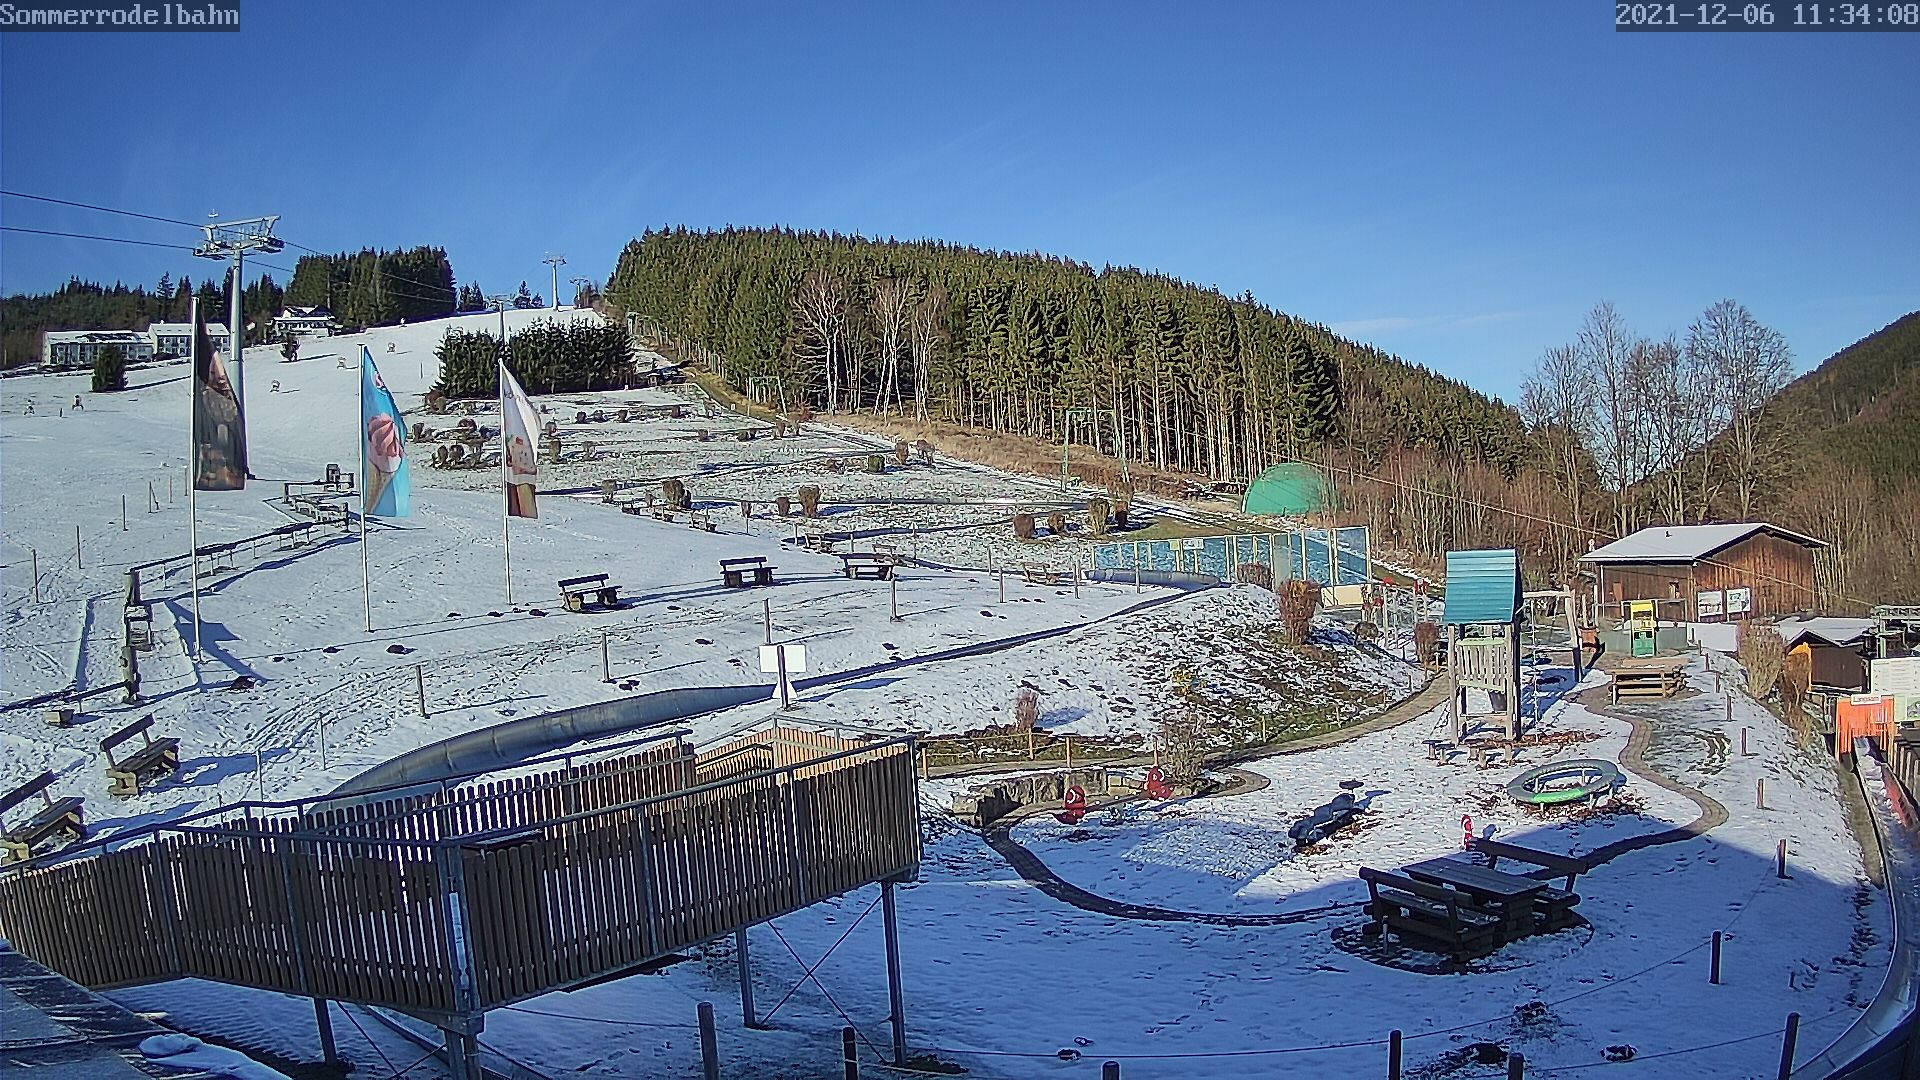 Ritzhagenlift Willingen (Bergstation), Willingen